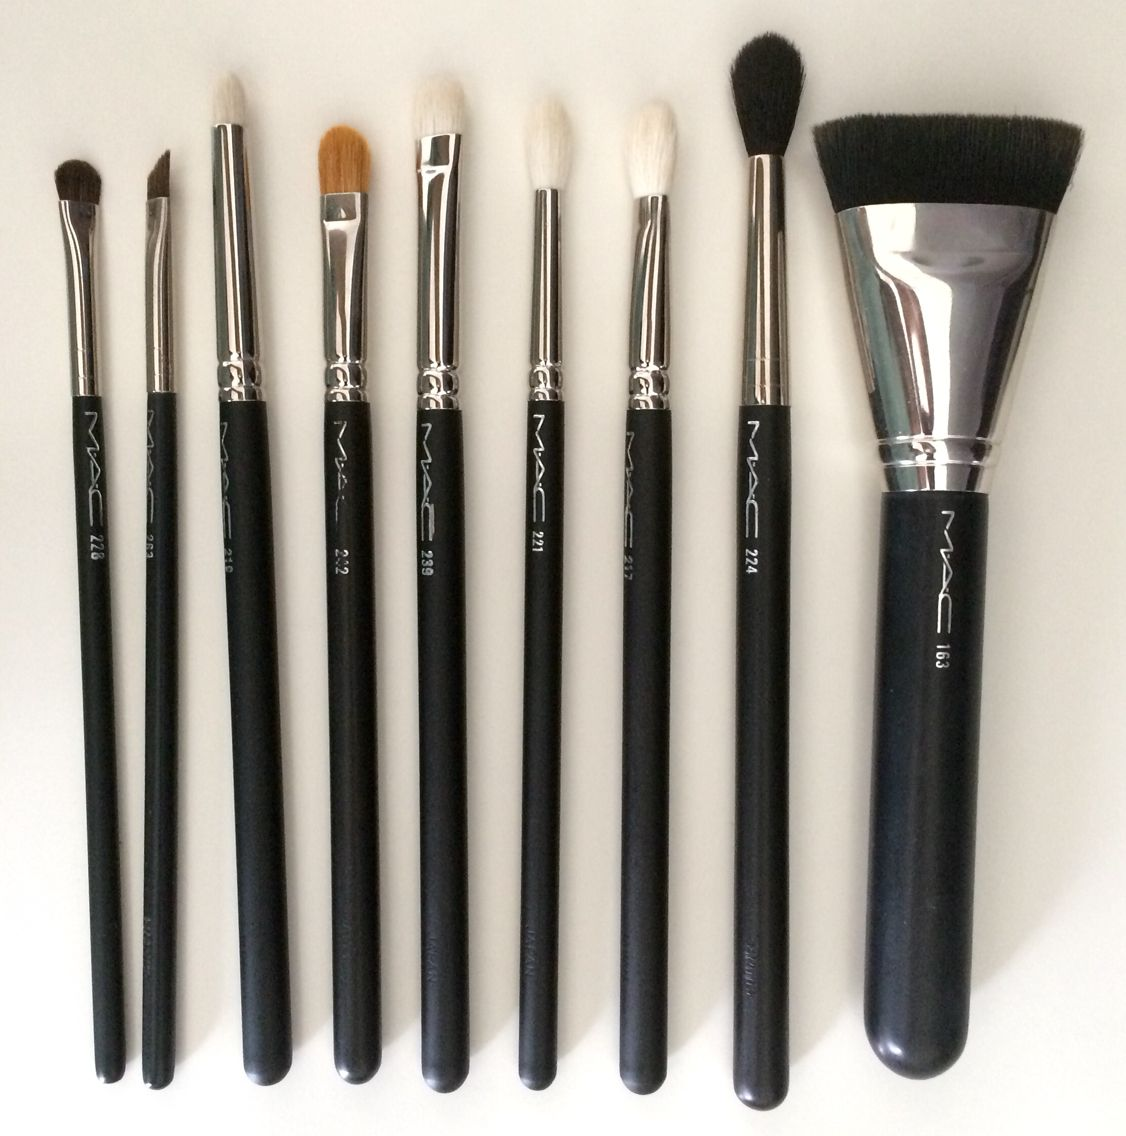 Macmakeup0 on Mac makeup brushes, Makeup brush set